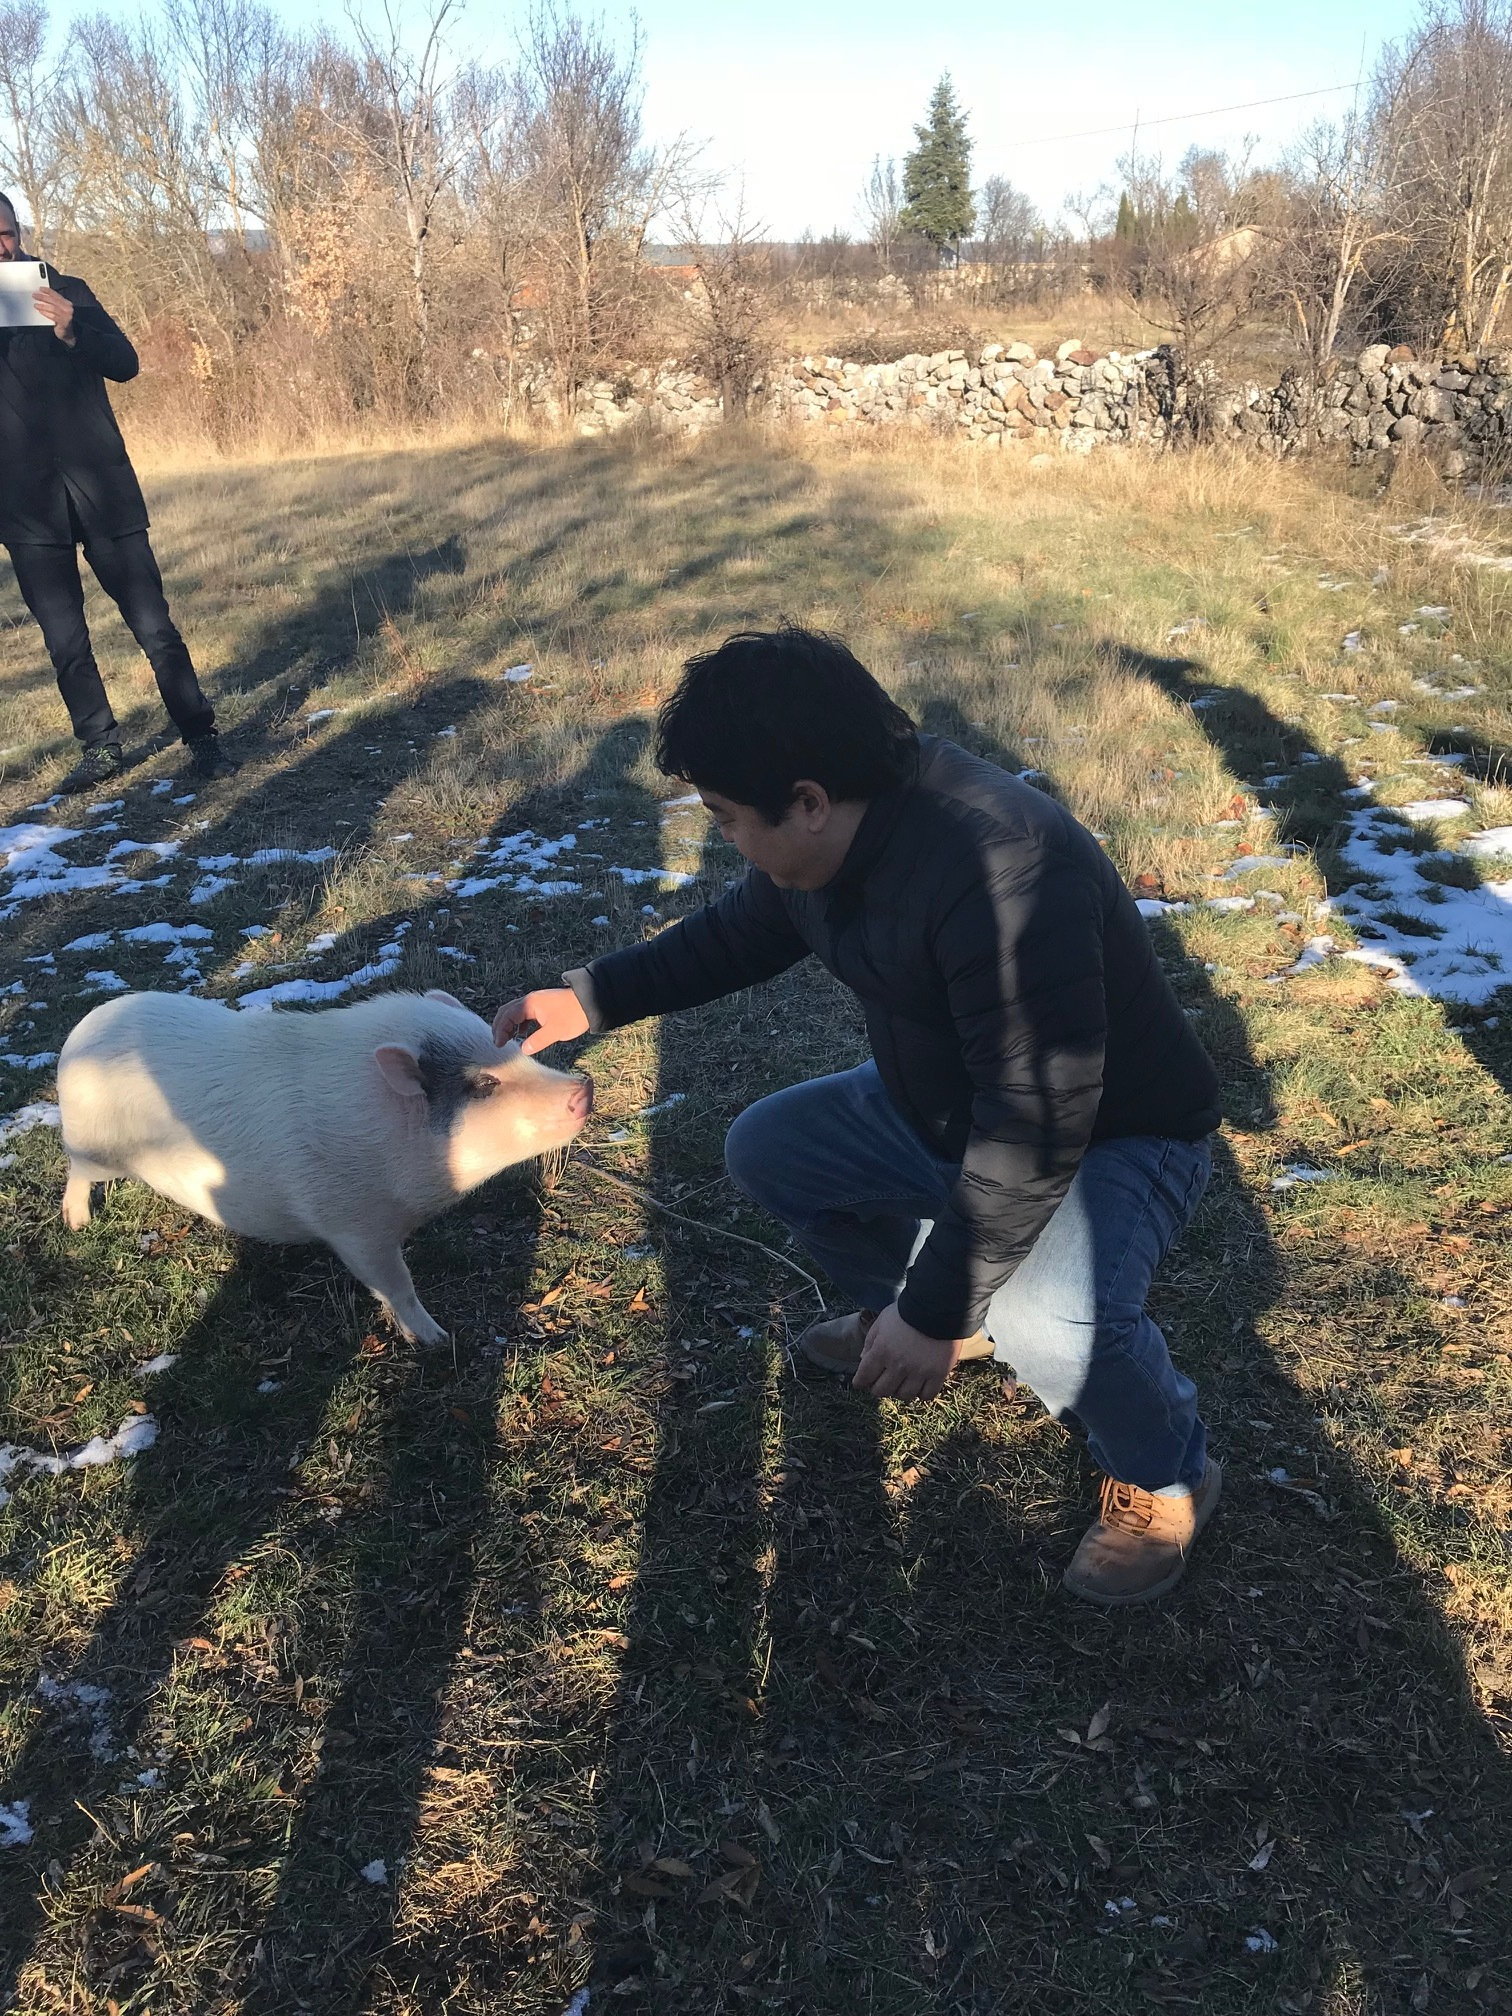 Although Javier owns a truffle pig, he opted to use the dog on the day of our visit because pigs are more likely to gobble up the truffles after they dig them up.